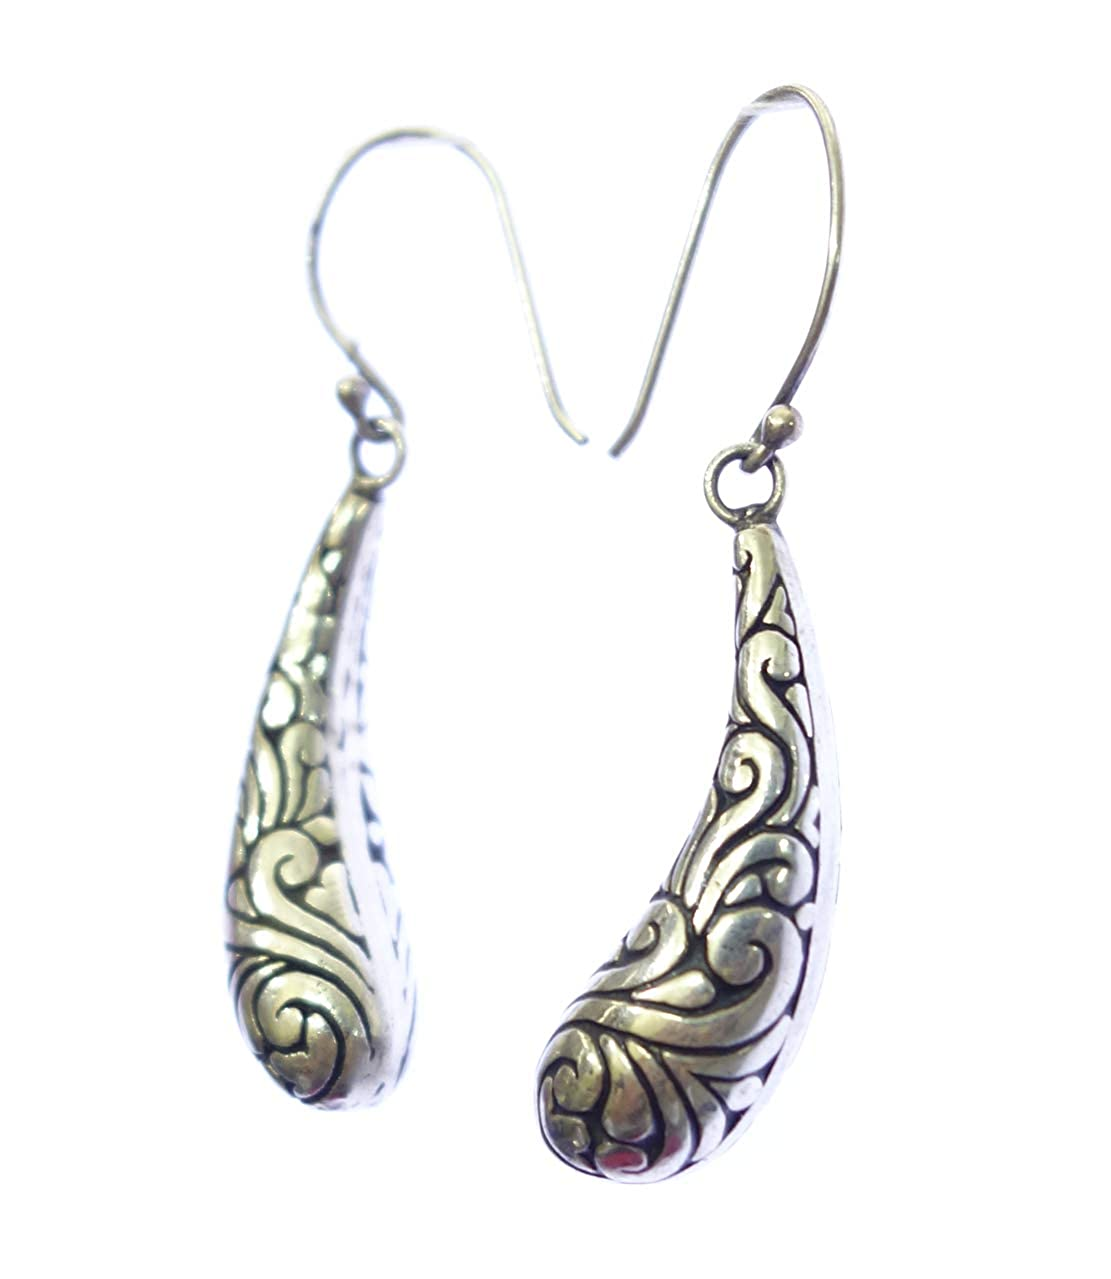 AUTHENTIC BALINESE FASHION DROP DANGLE FILIGREE EARRING FOR WOMEN /& GIRLS 925 STERLING SILVER ETHNIC TRIBAL UNIQUE DESIGNER MODERN EARRING JEWELRY HANDMADE BY ARTISANS